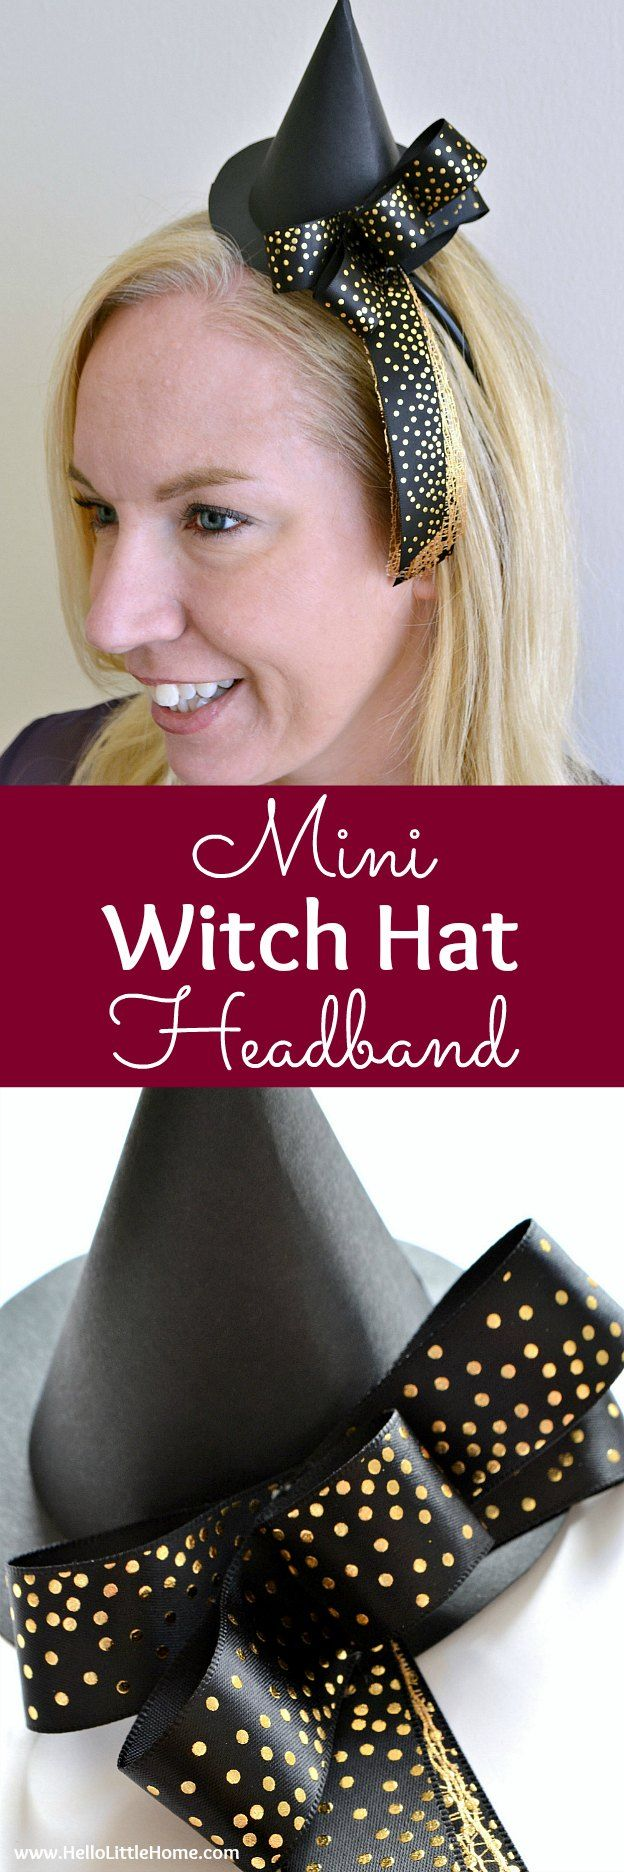 66b0089f355 DIY Mini Witch Hat Headband ... a fun craft that s perfect to wear for an  easy Halloween costume! Learn how to make this easy DIY paper witch hat  using a ...